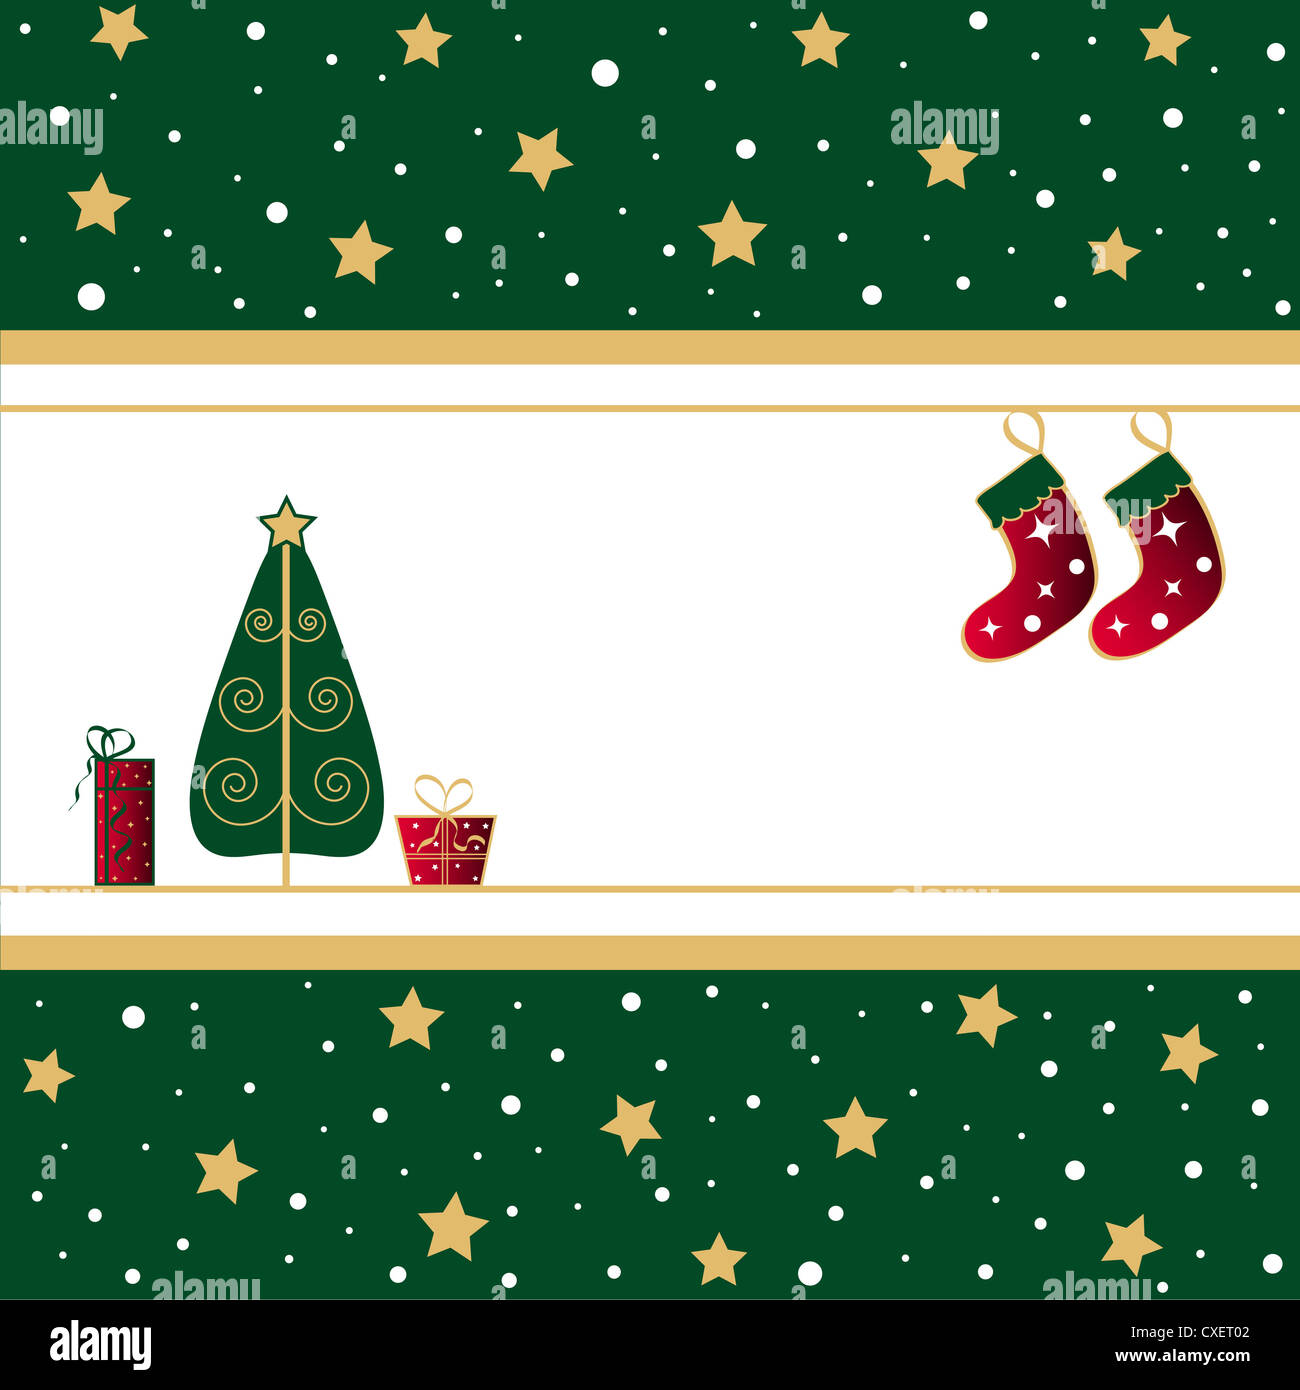 Christmas tree with gifts and stockings Stock Photo